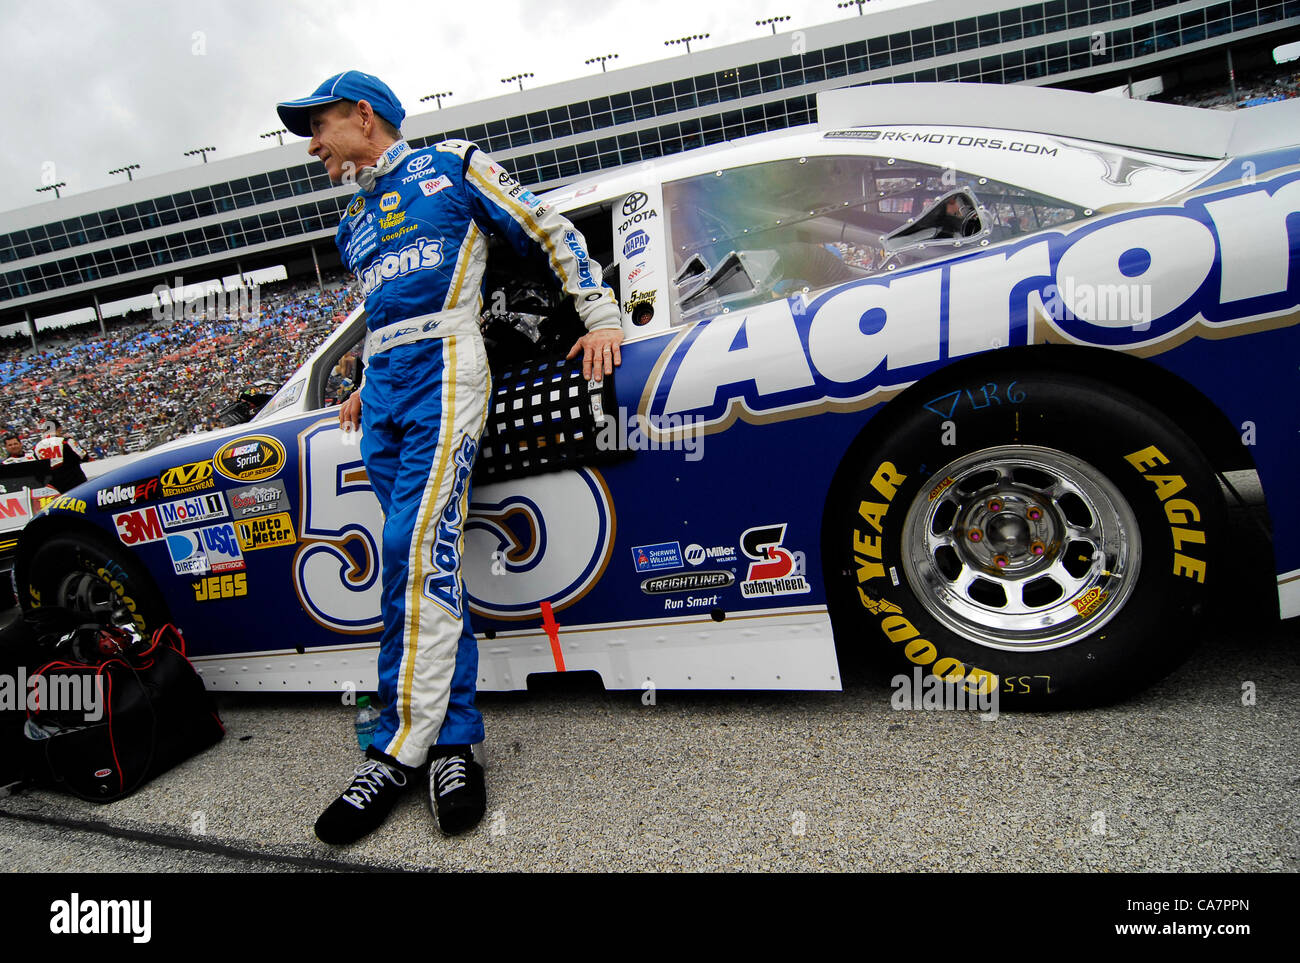 April 14, 2012 - Fort Worth, TX, USA - April 14, 2012 Ft. Worth, Tx. USA. MArk Martin before the NASCAR Sprint Cup Stock Photo